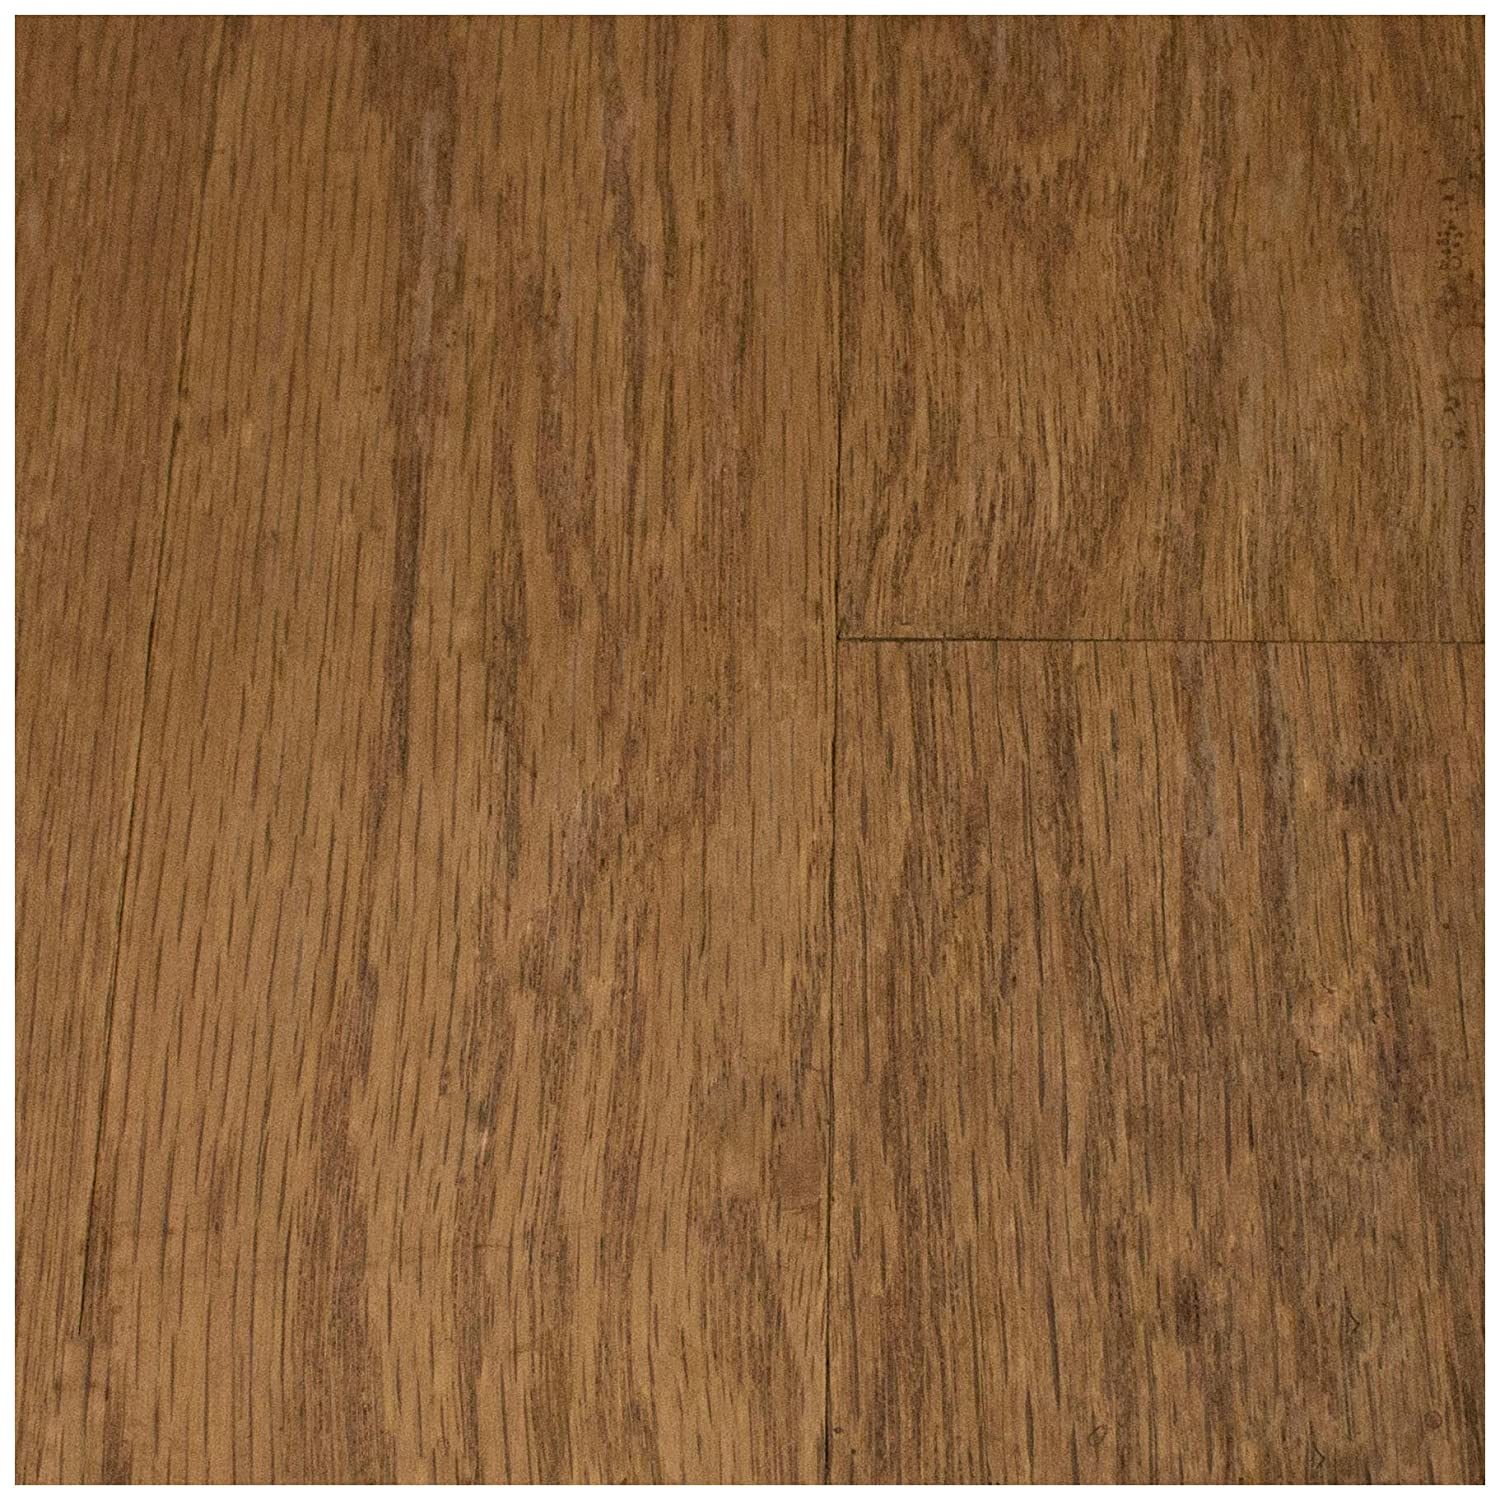 36 Length Hartco Oneida Strip Red Oak Tread Length Moldings Online Armstrong Saddle Collection 36 2024536402